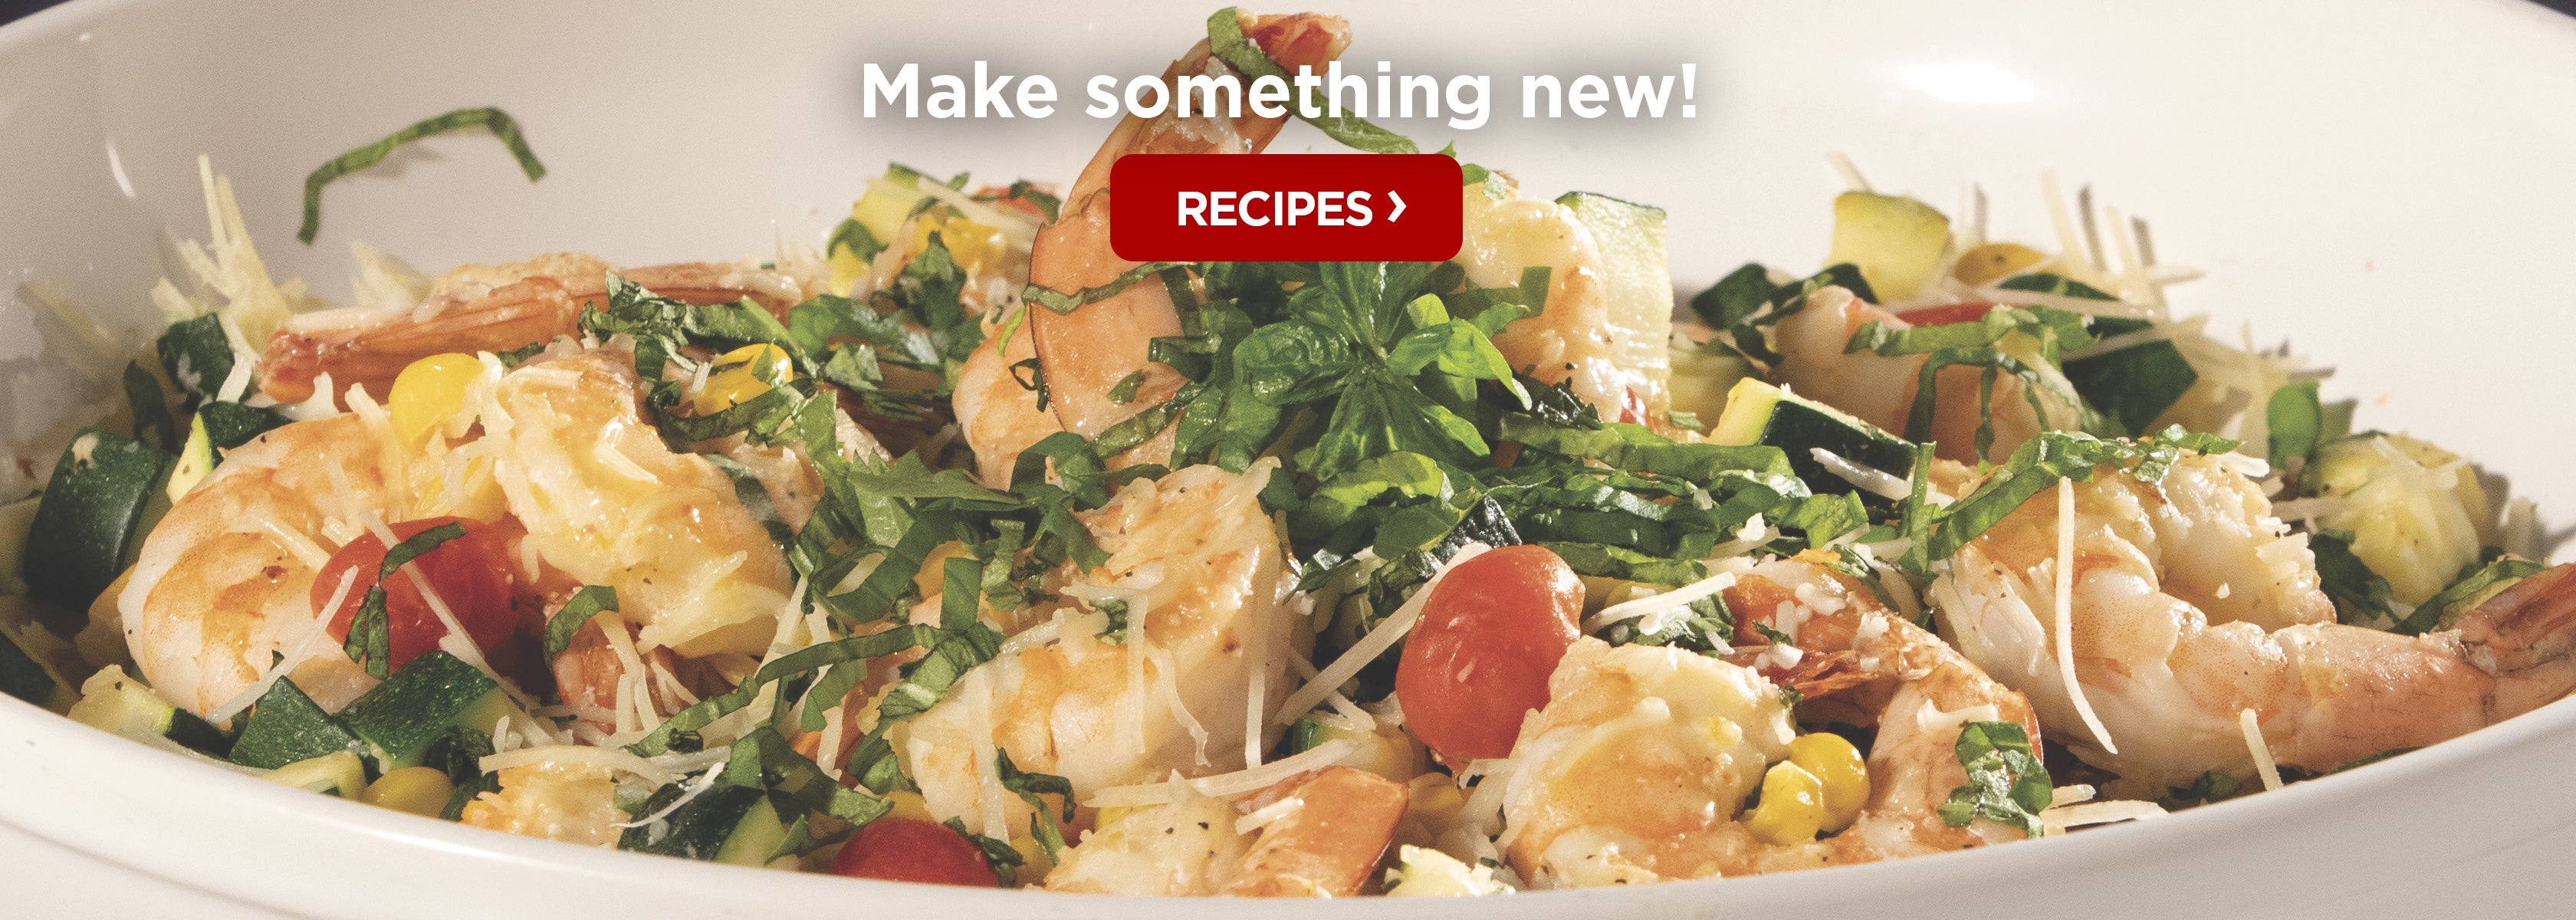 Make something new - Recipes